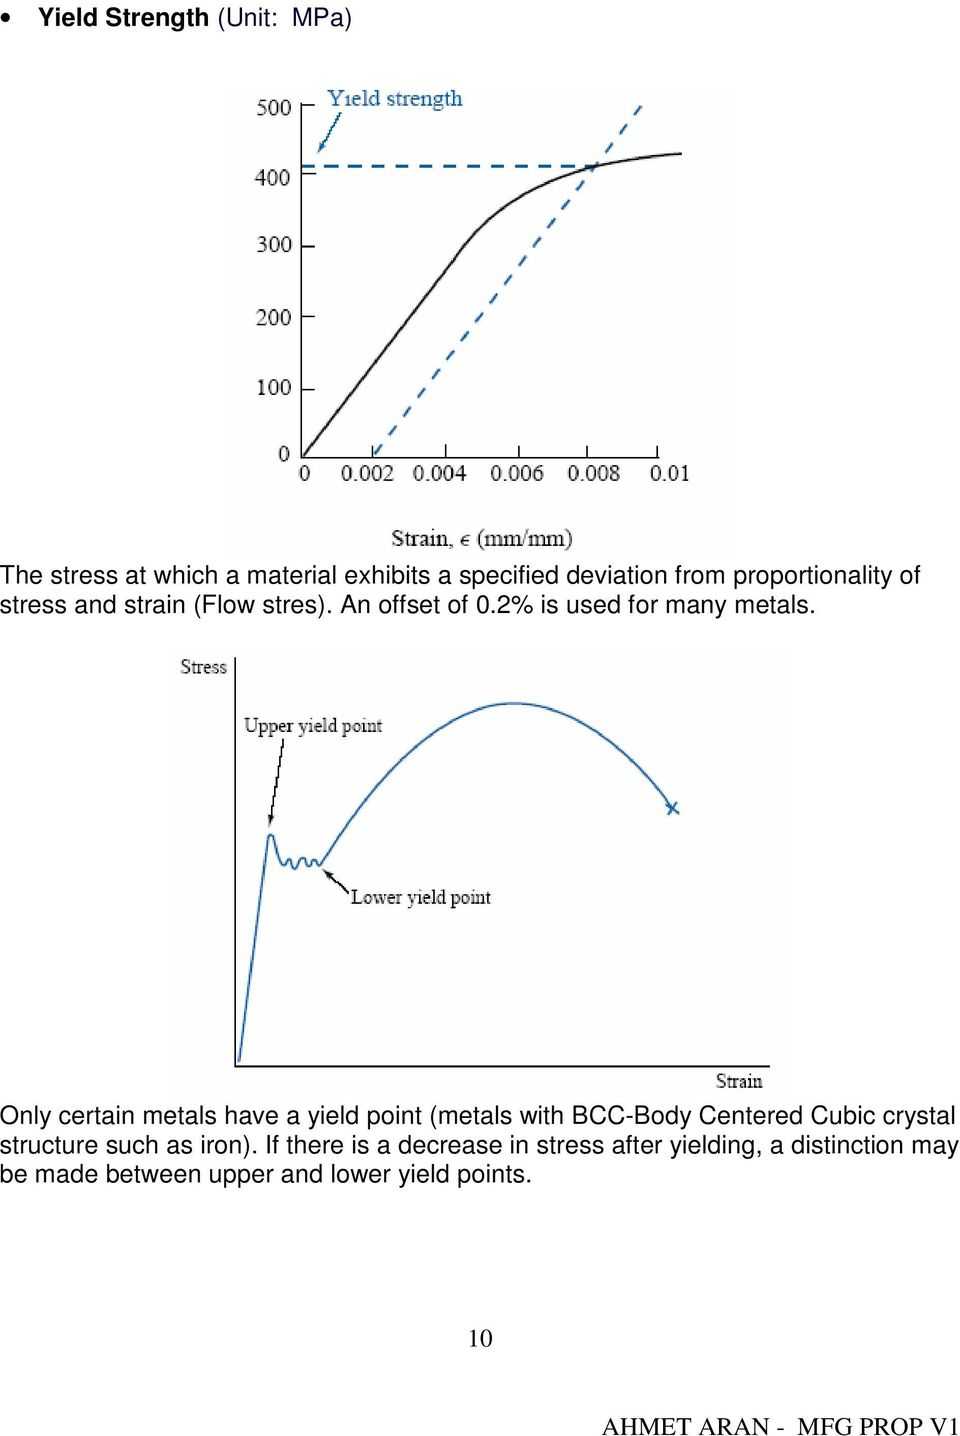 Only certain metals have a yield point (metals with BCC-Body Centered Cubic crystal structure such as